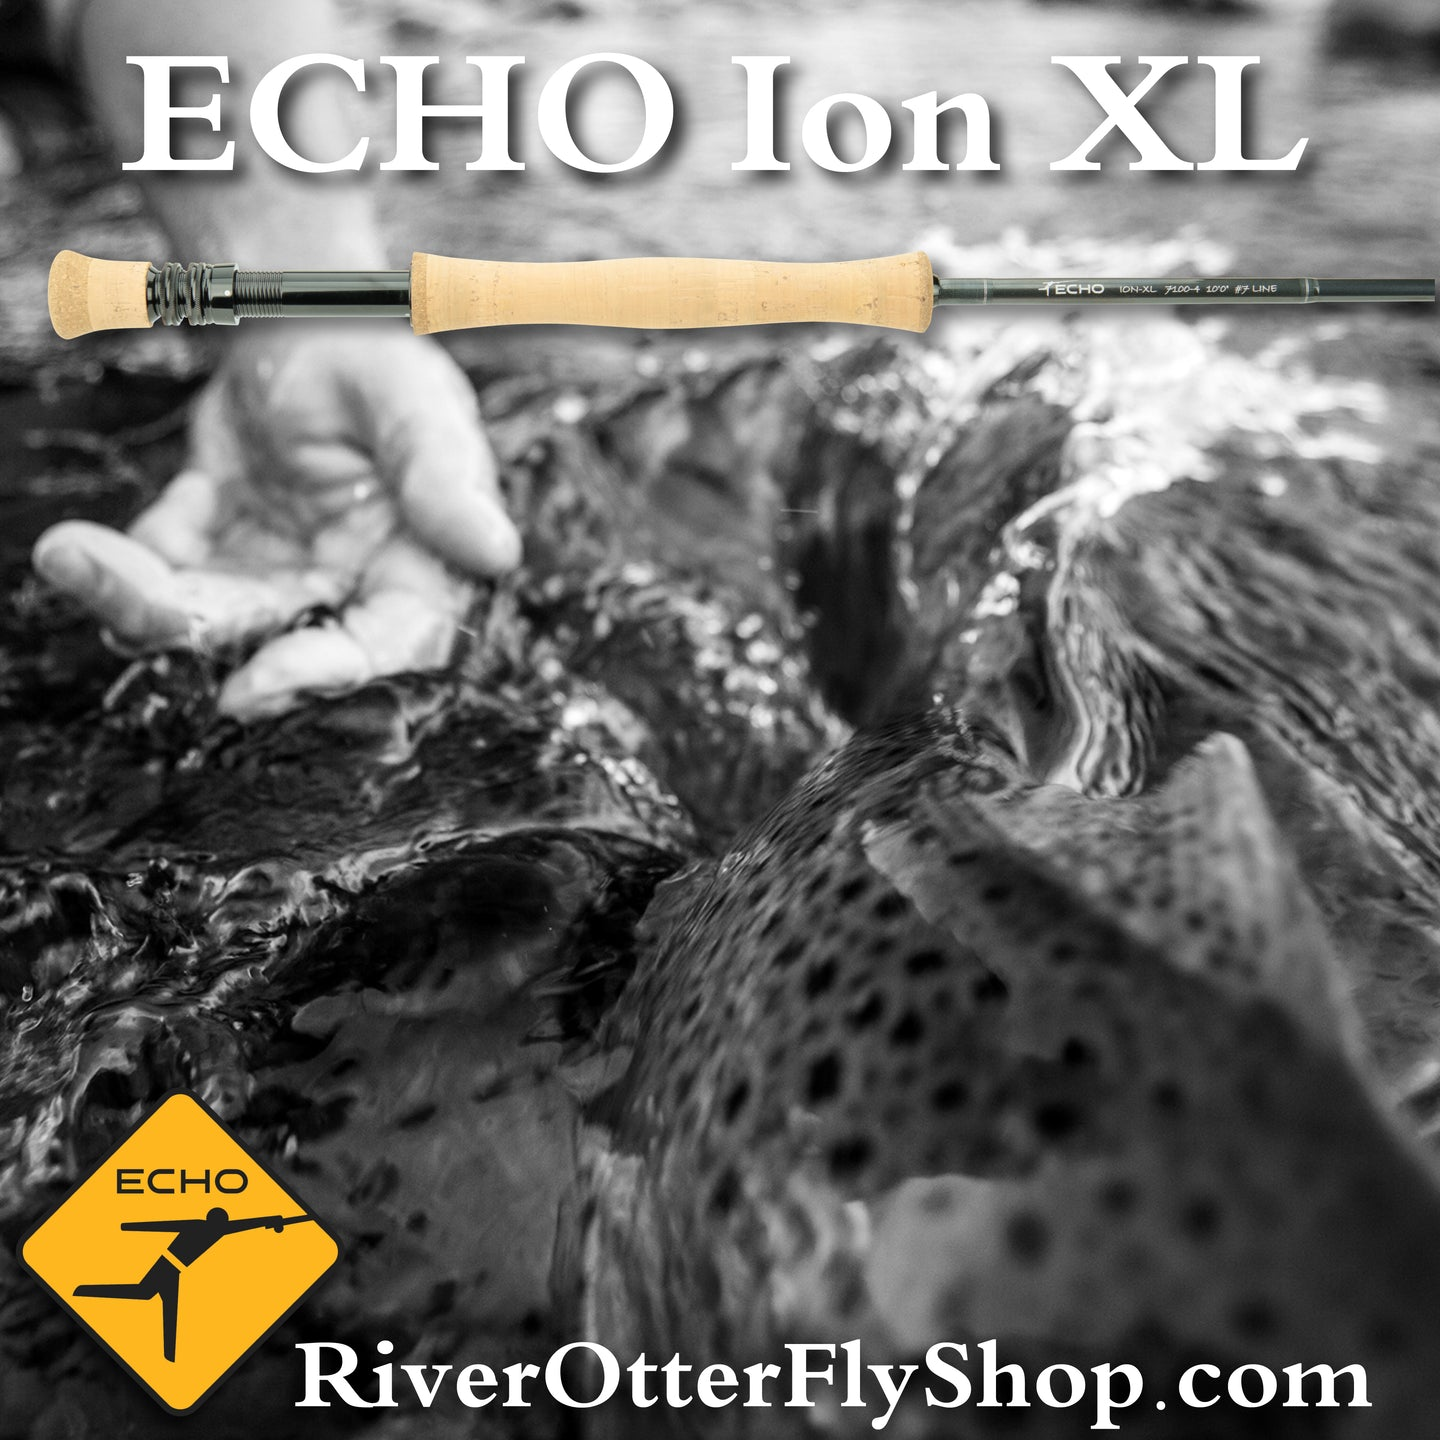 Echo Ion XL 10wt saltwater fly rod sale